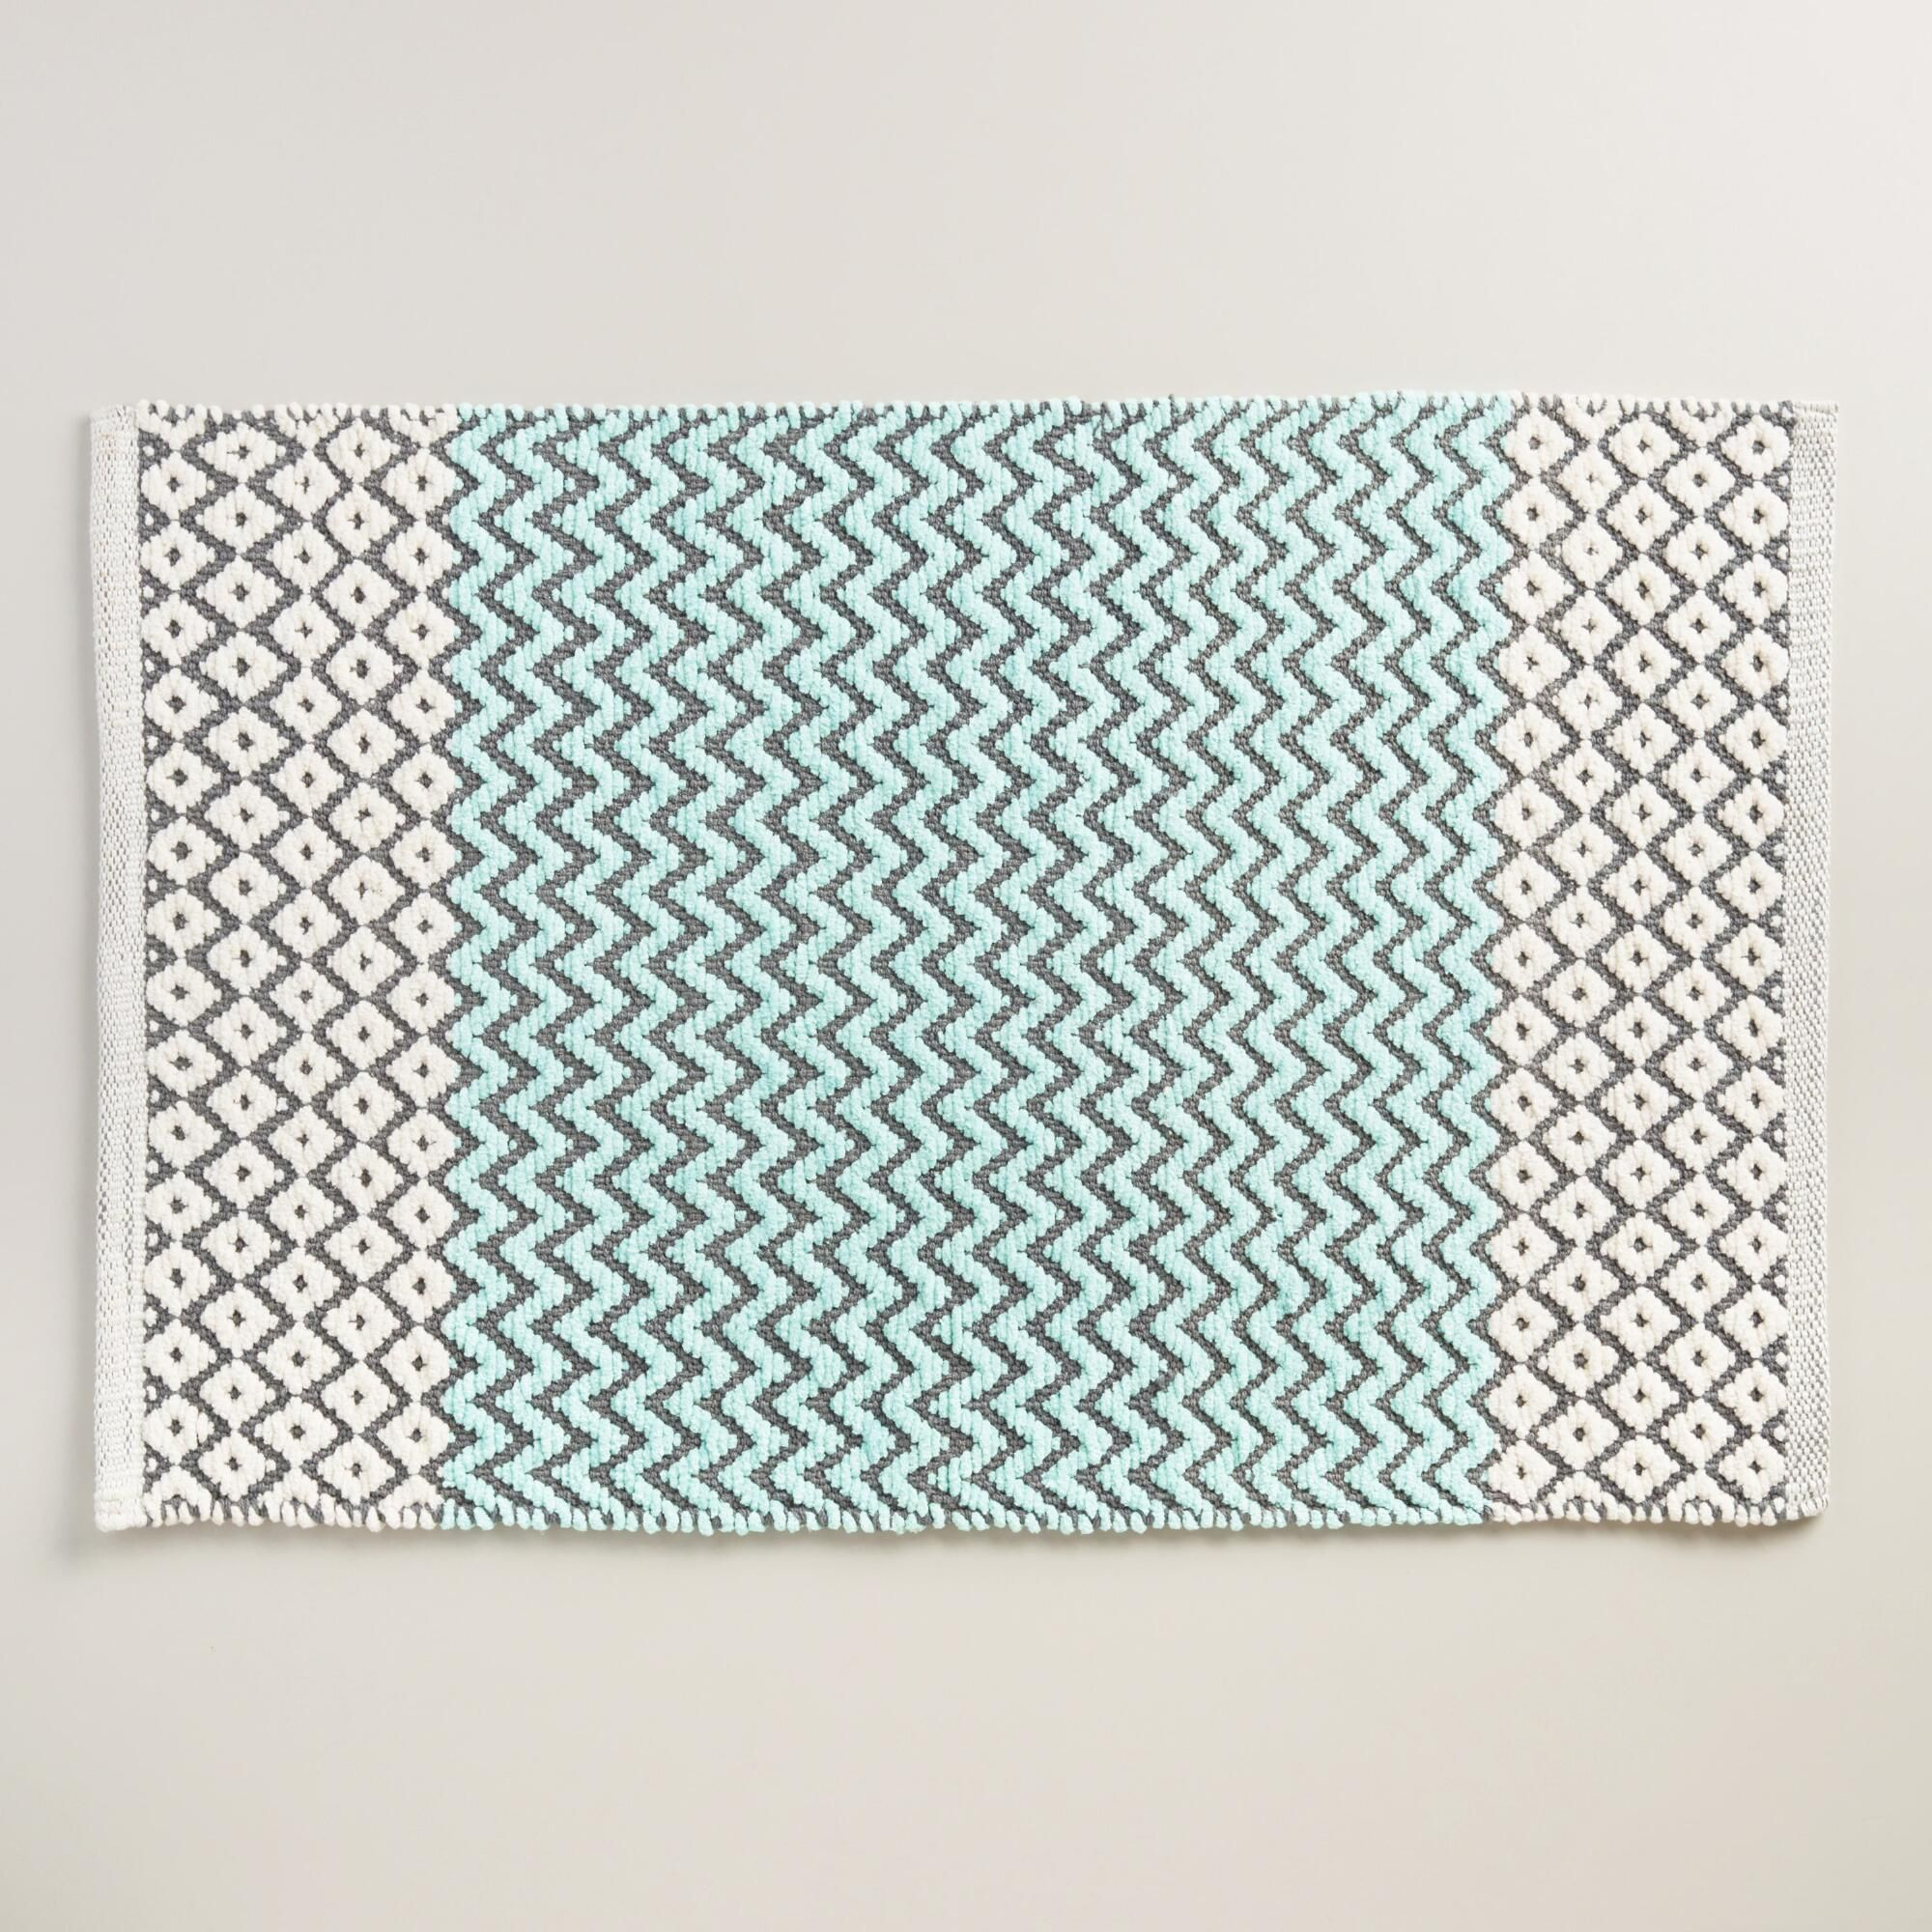 A woven diamond design in aqua, ivory and gray with plush cotton ...